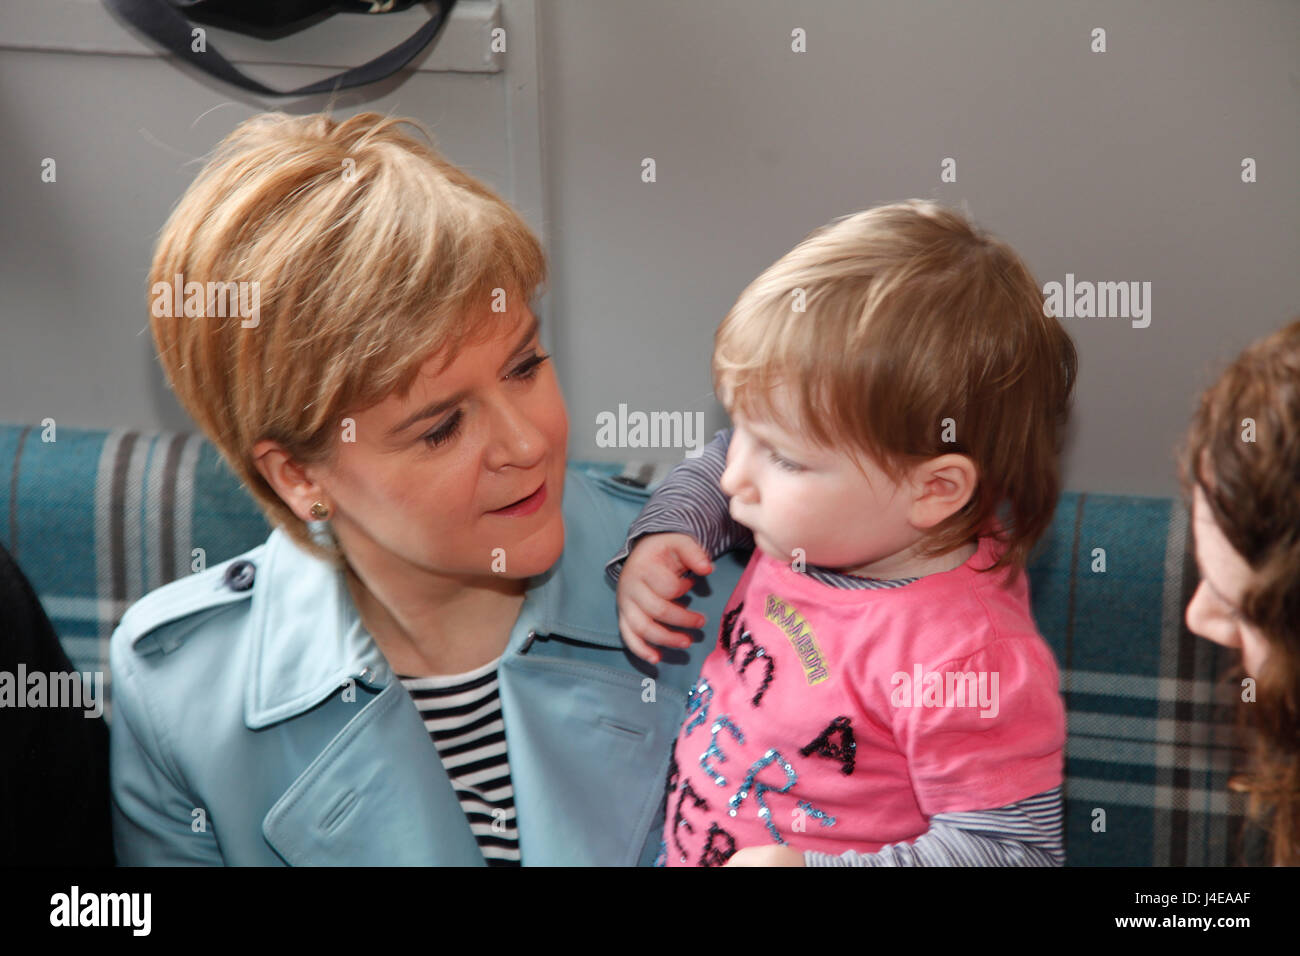 Patrick Glasgow 13 May 2017. First Minister Nicola Sturgeon campaigning in Patrick Glasgow. Credit: ALAN OLIVER/Alamy - Stock Image